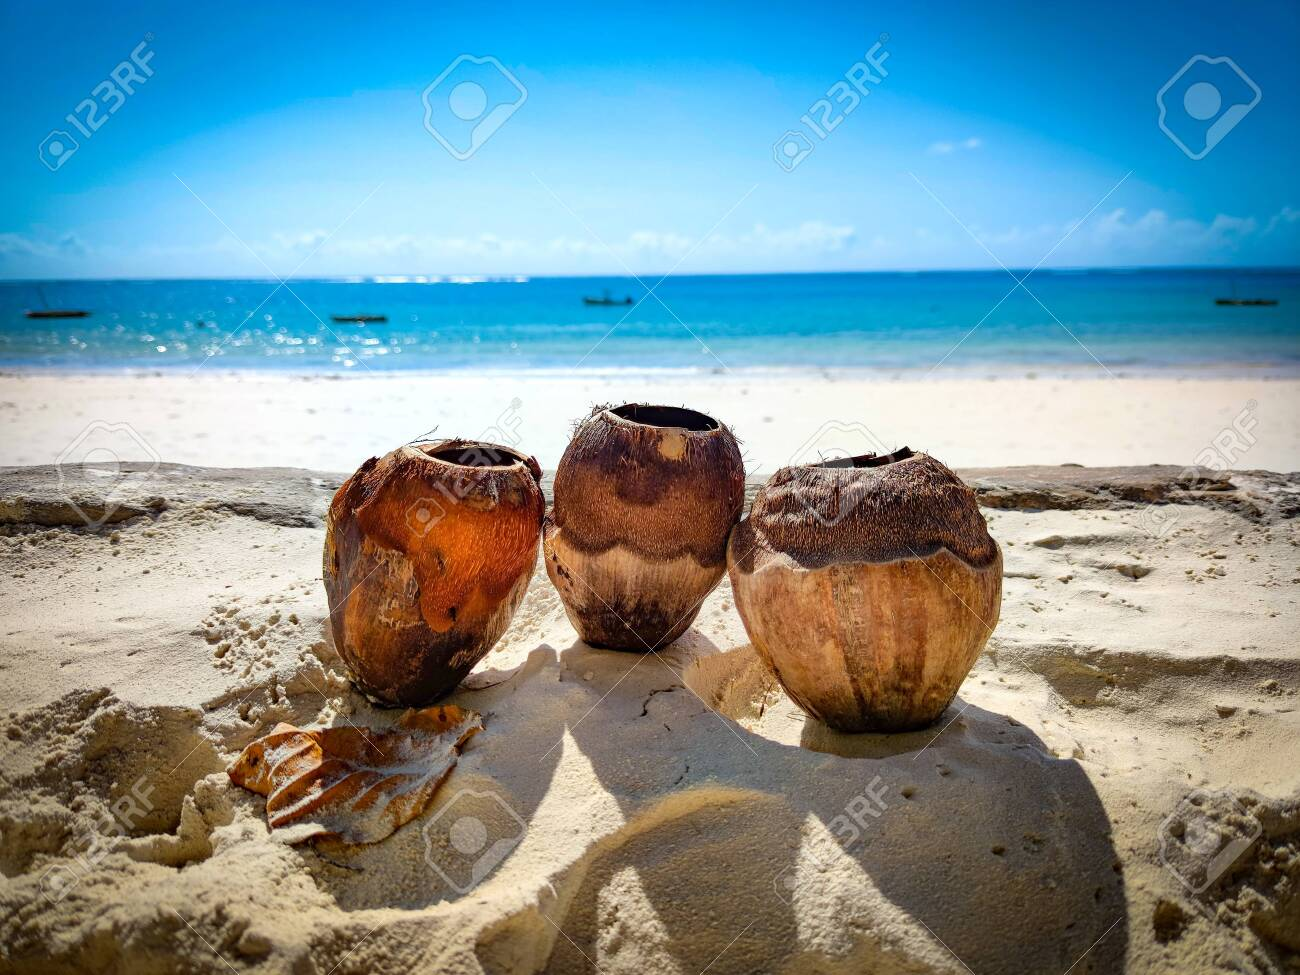 Three coconuts in the sand on a beach in Kenya, Africa. In the background is the Indian Ocean. Its a tropical paradise. - 146901060